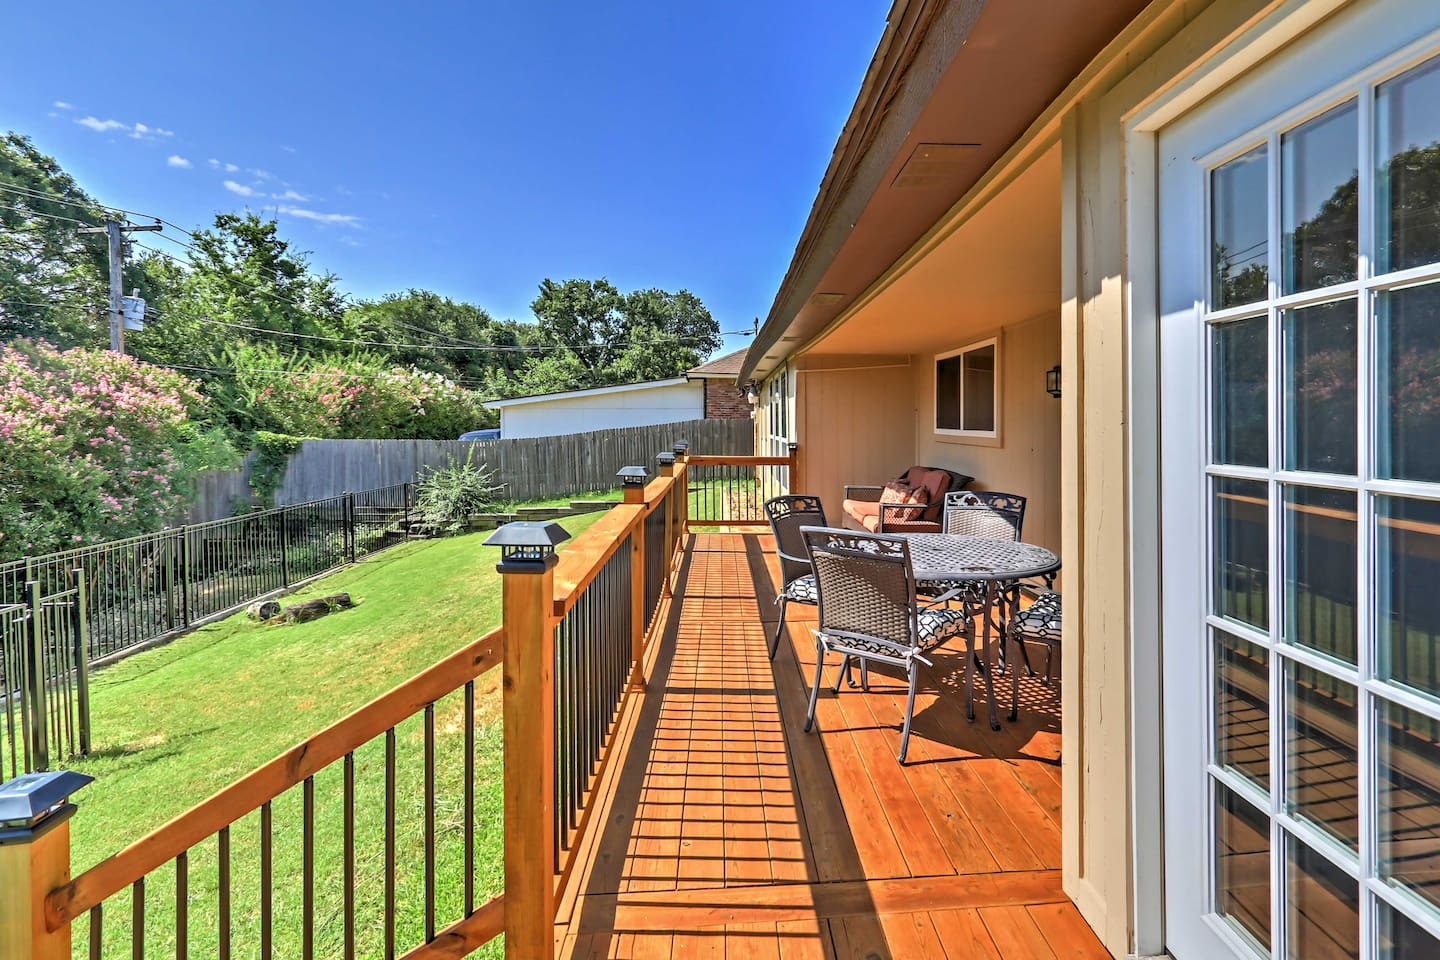 Take a trip with friends and family to this vacation rental!